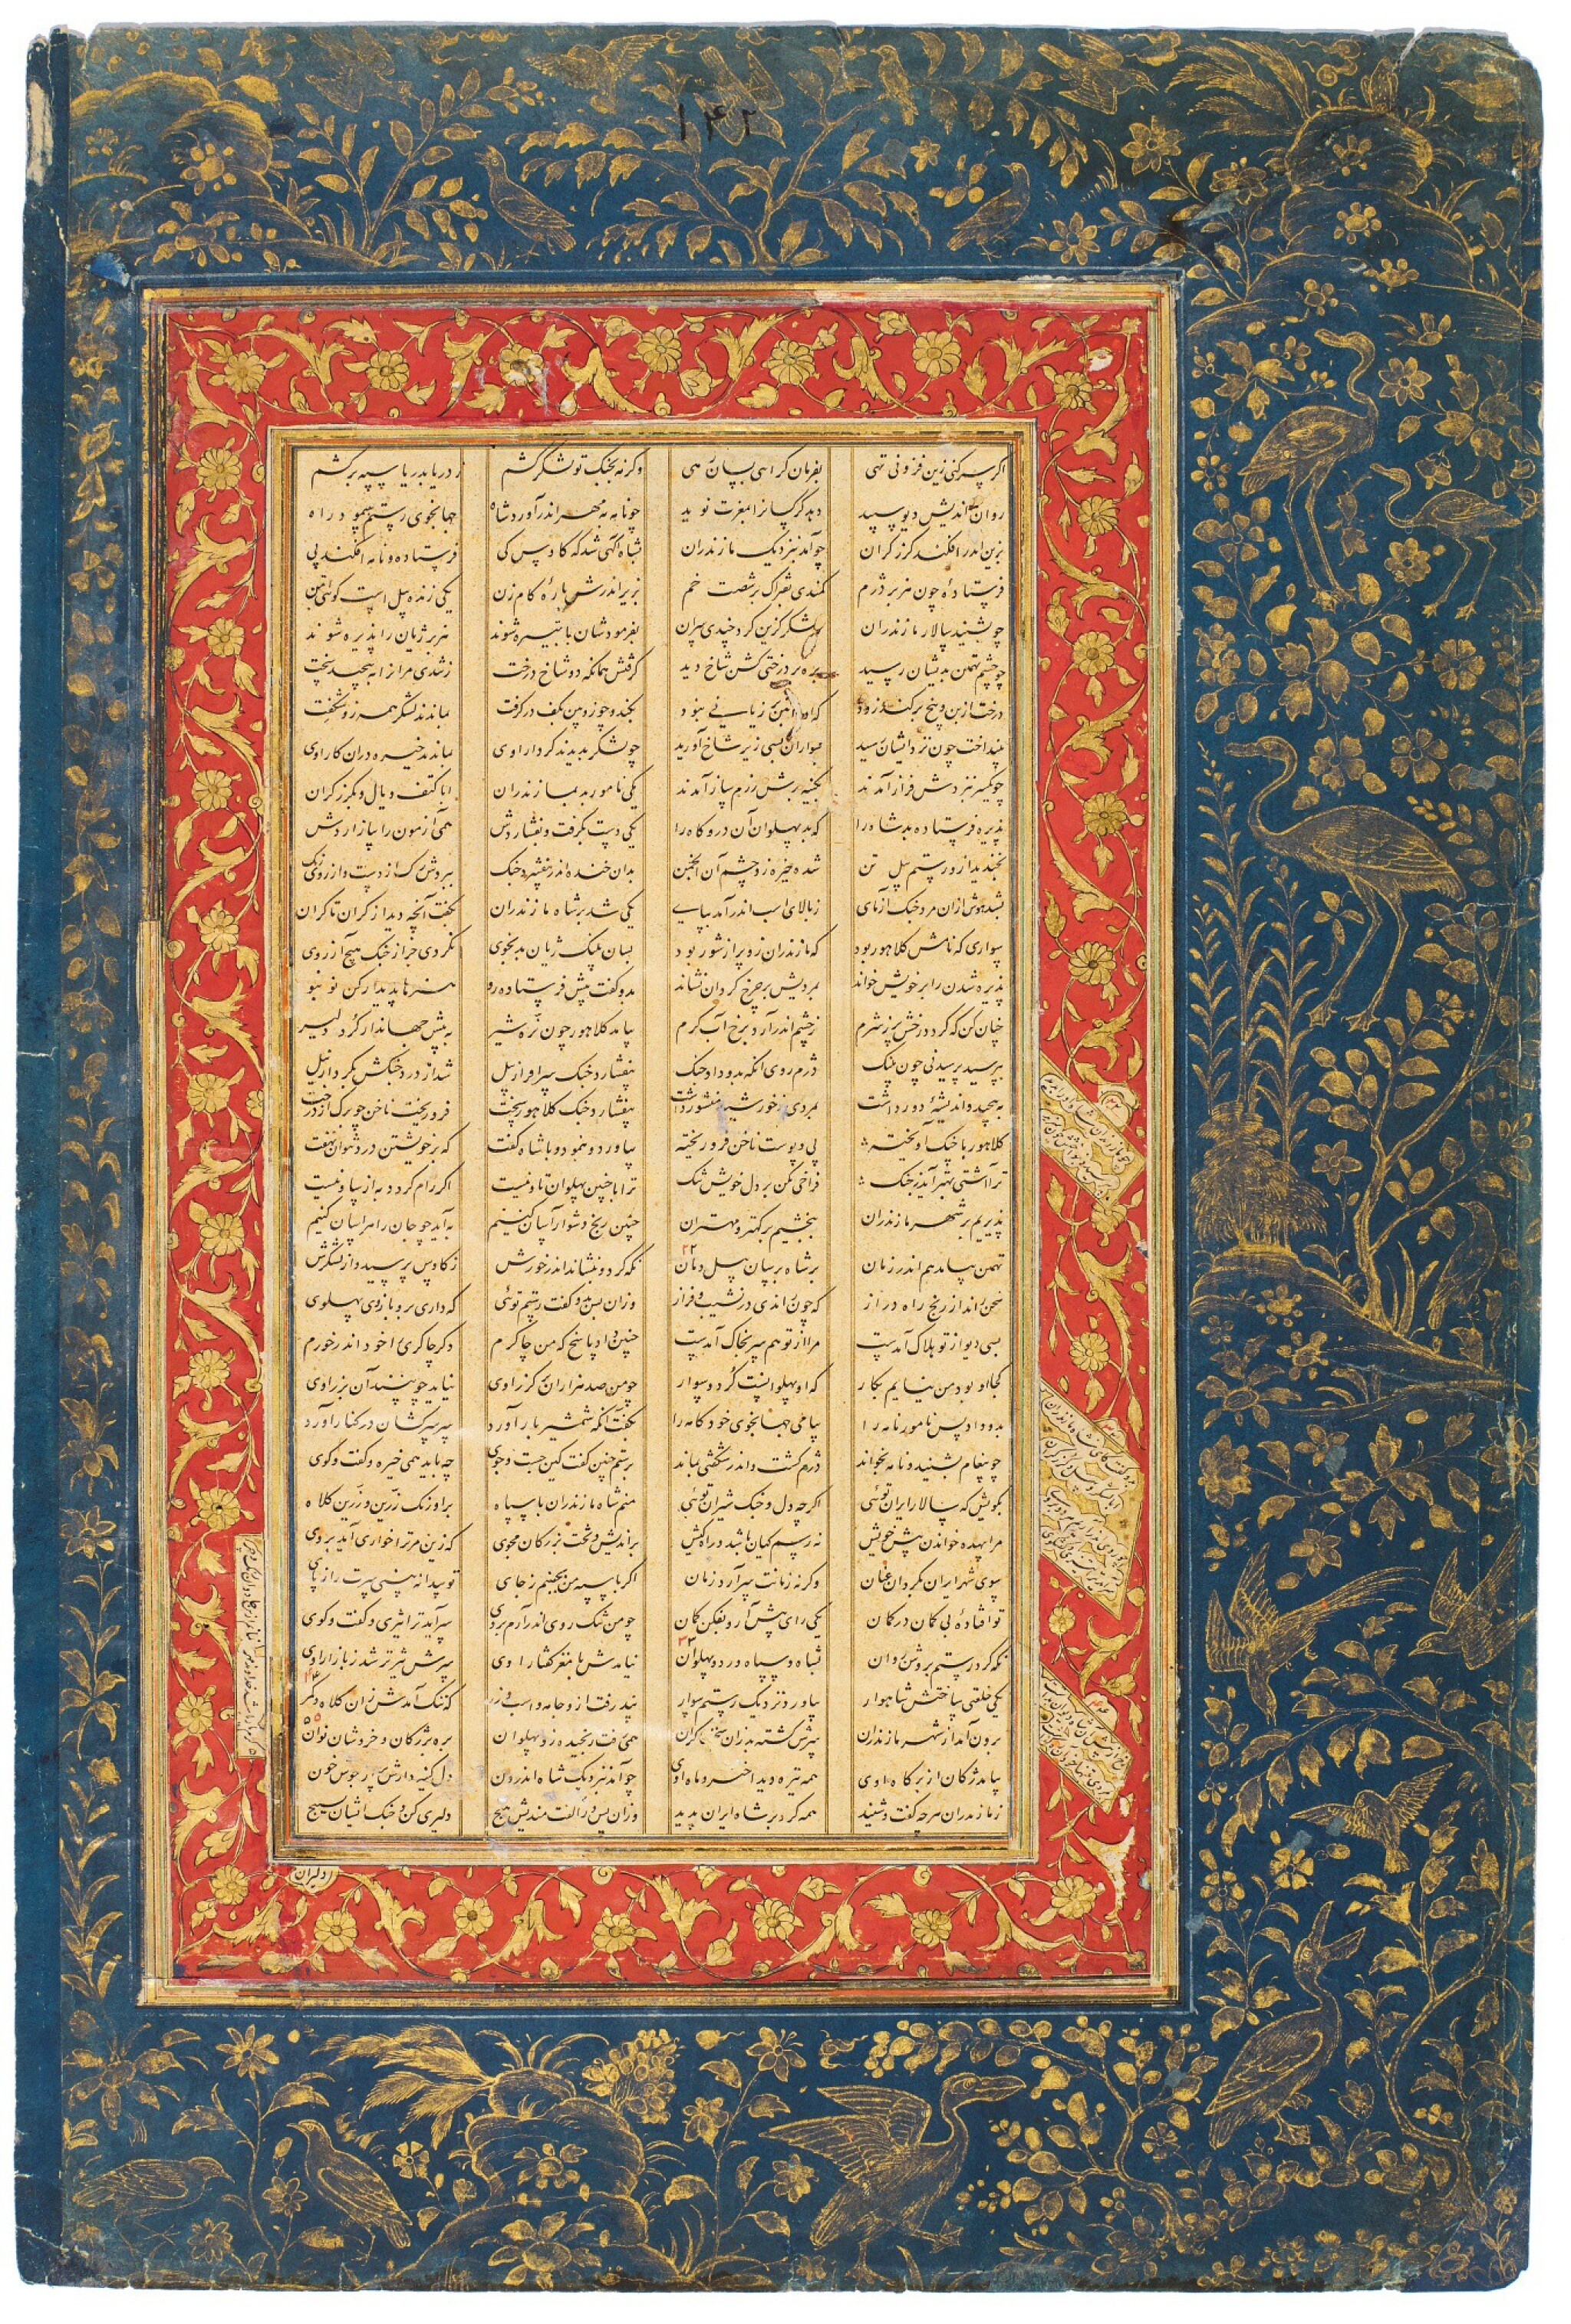 View full screen - View 1 of Lot 31. AN ILLUMINATED TEXT LEAF FROM A ROYAL COPY OF FIRDAUSI'S SHAHNAMEH, CONTAINING SECTIONS ON KAY KAVUS WRITING A LETTER TO THE KING OF MAZANDARAN AND KAVUS GOING TO MAZANDARAN, INDIA, MUGHAL, CIRCA 1610.